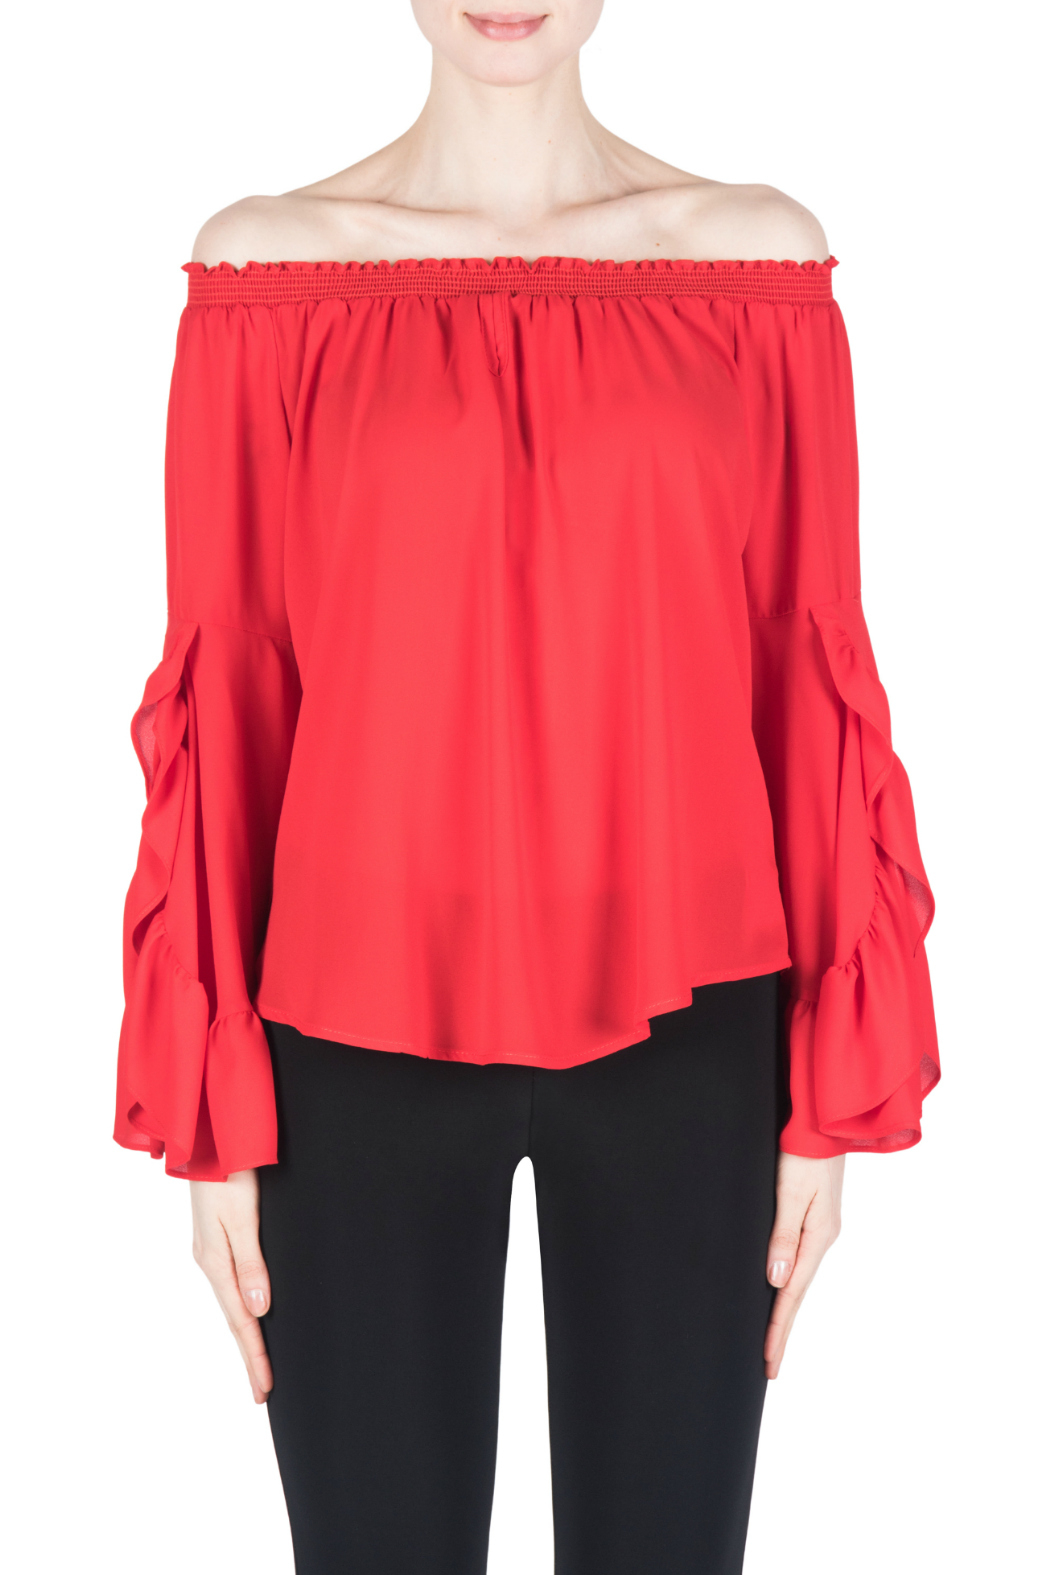 Joseph Ribkoff Red Flutter Sleeve Blouse - Front Cropped Image